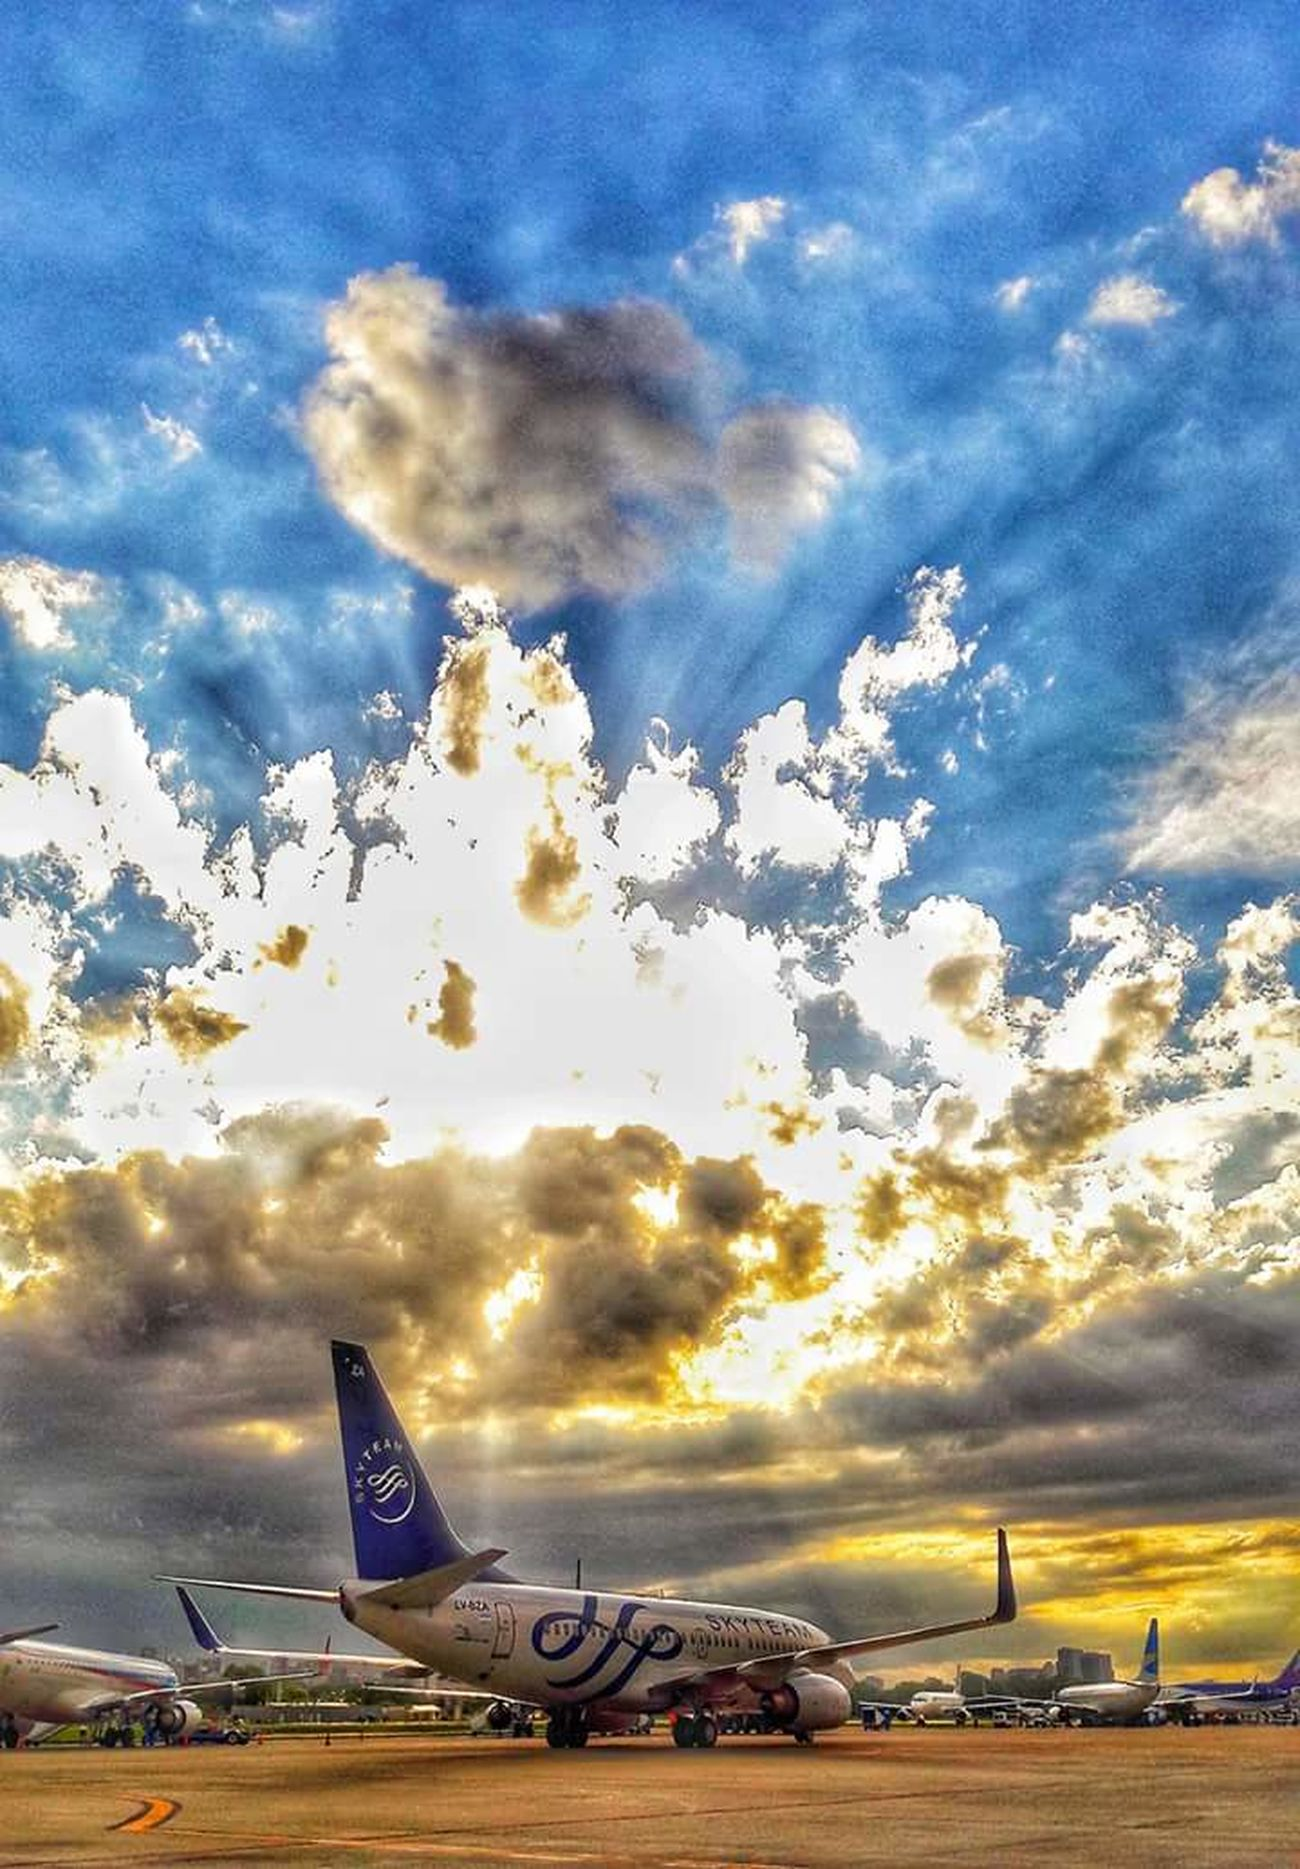 16 de febrero / 17.59hs Airport AirPlane ✈ Boeing737-700 Aerolineas Argentinas Skyteam Aircraft AEP Aeroparque Letsgo LVBZA Sunset Sun Clouds Skylovers Sky Nature Beautiful Nature NaturalBeauty Photography Landscape Photoshoot Photographer Darobarreda